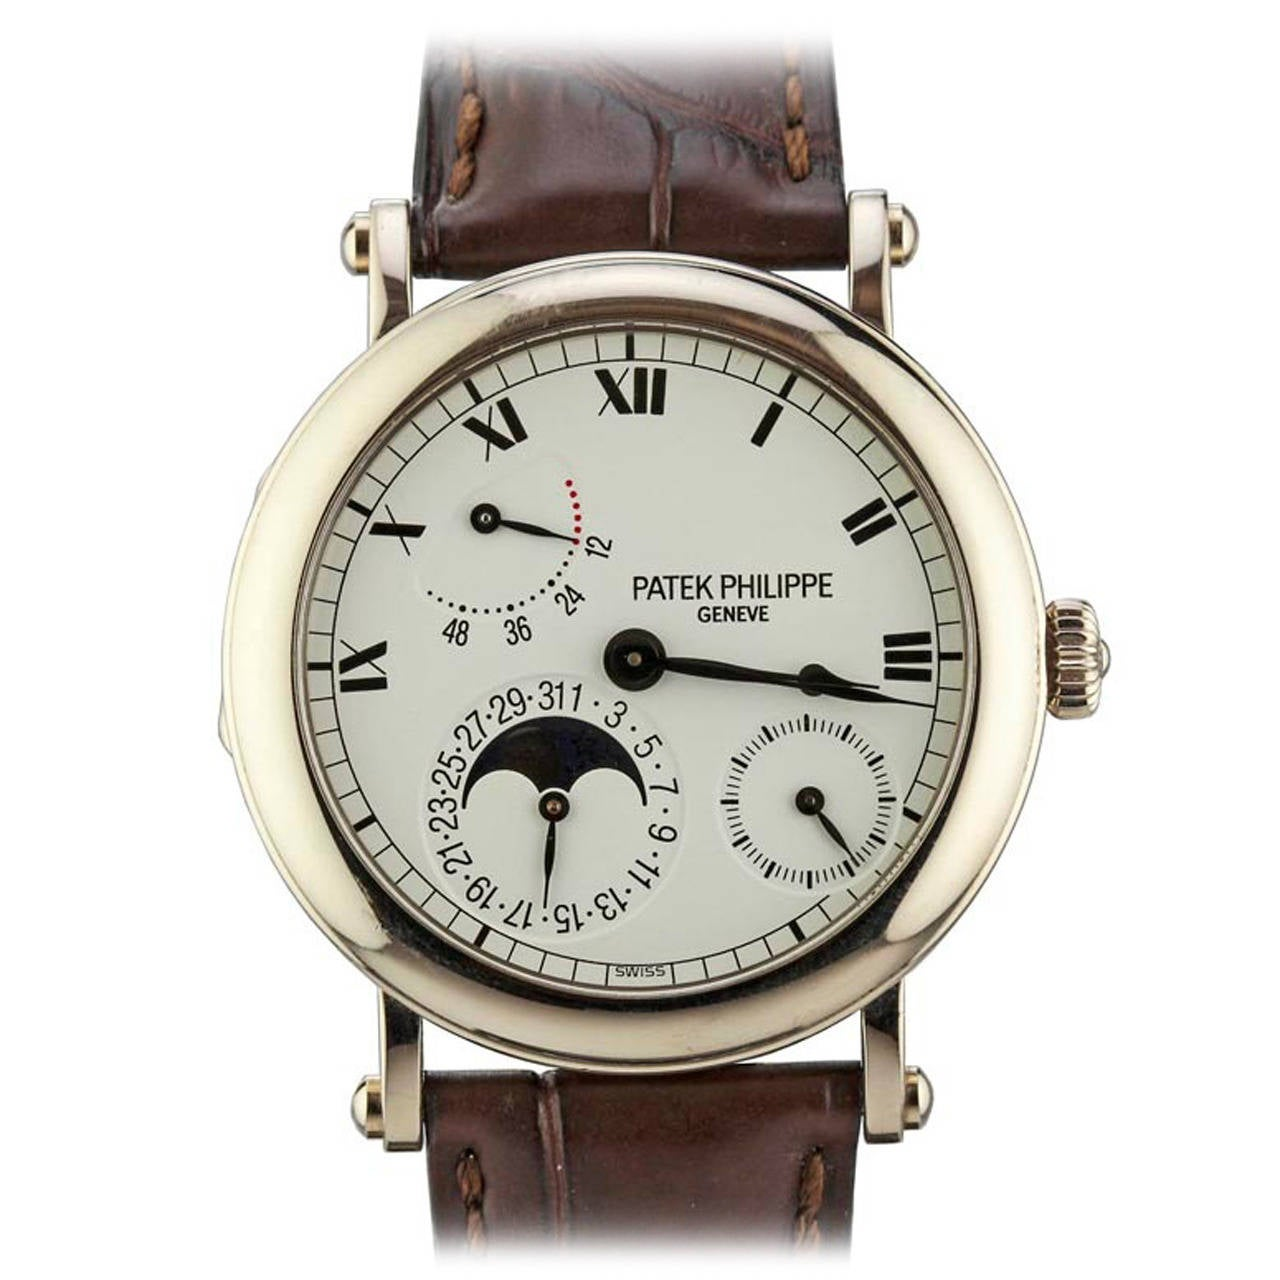 Patek philippe white gold power reserve moonphase wristwatch ref 5054g at 1stdibs for Patek philippe moonphase